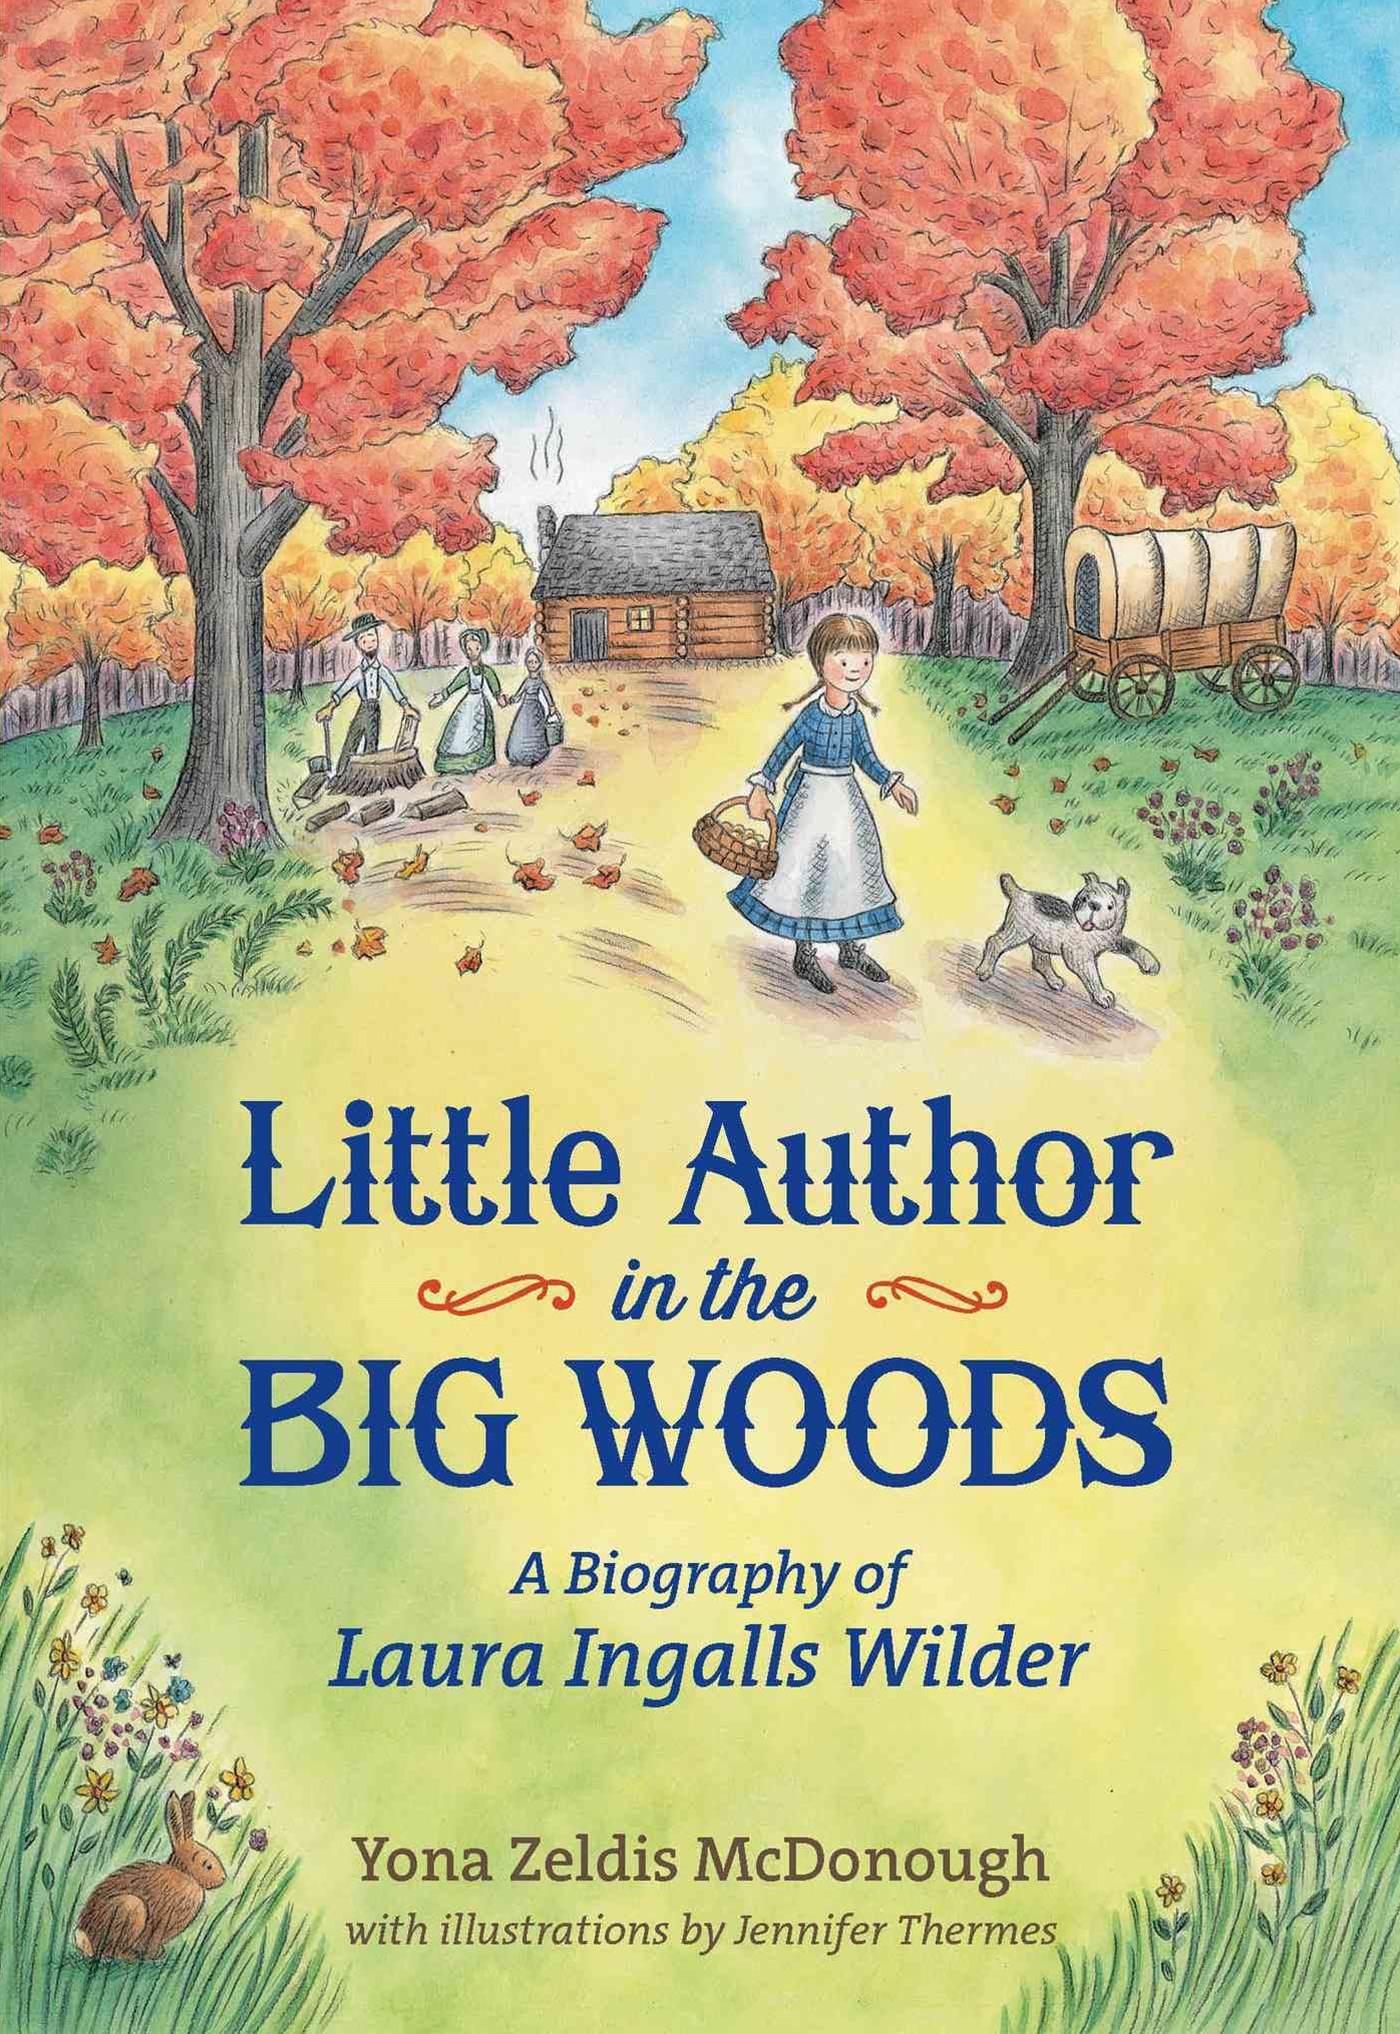 Little Author in the Big Woods